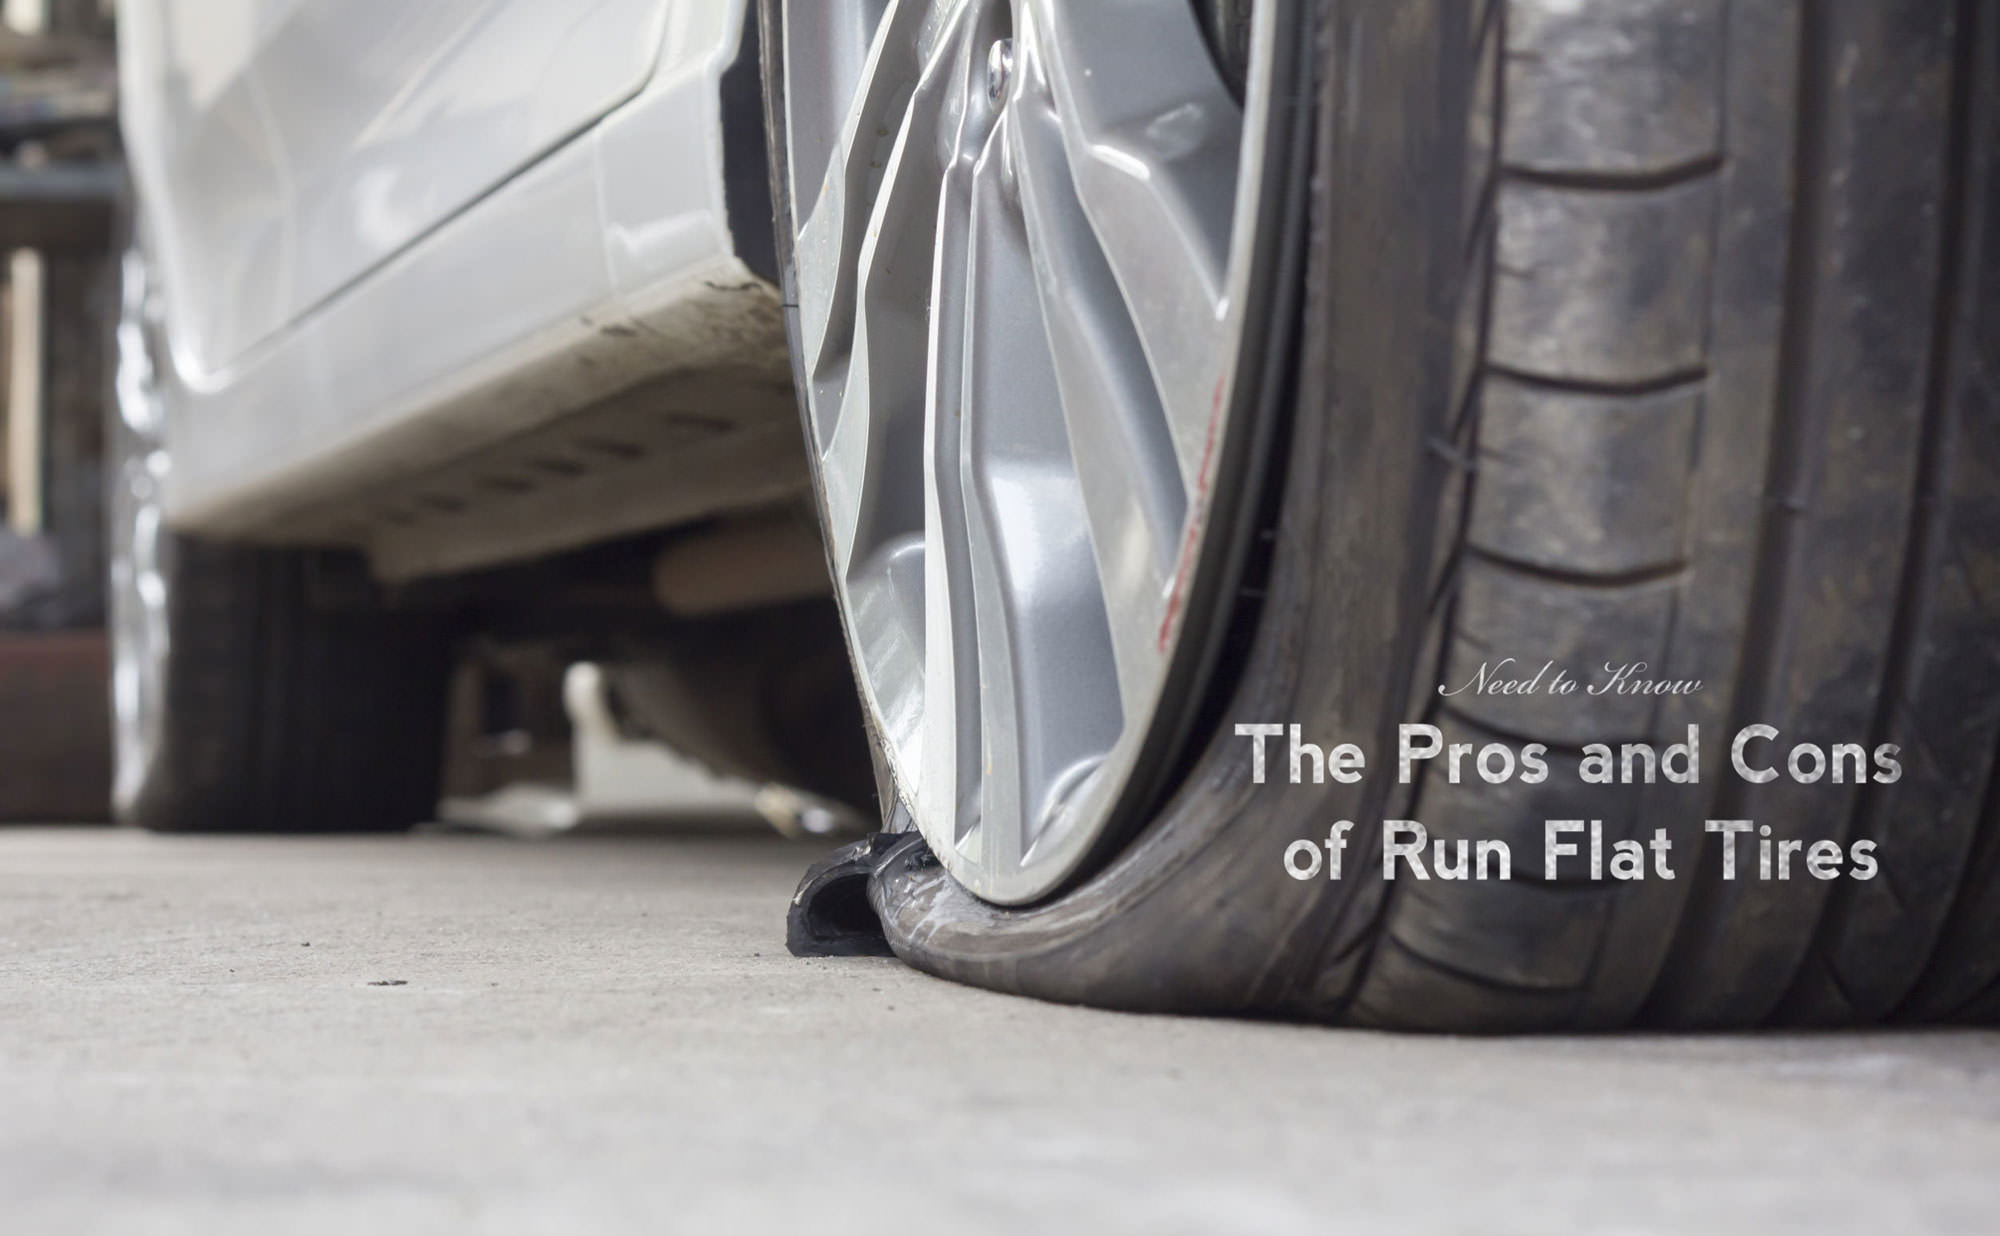 The Pros and Cons of Run Flat Tires